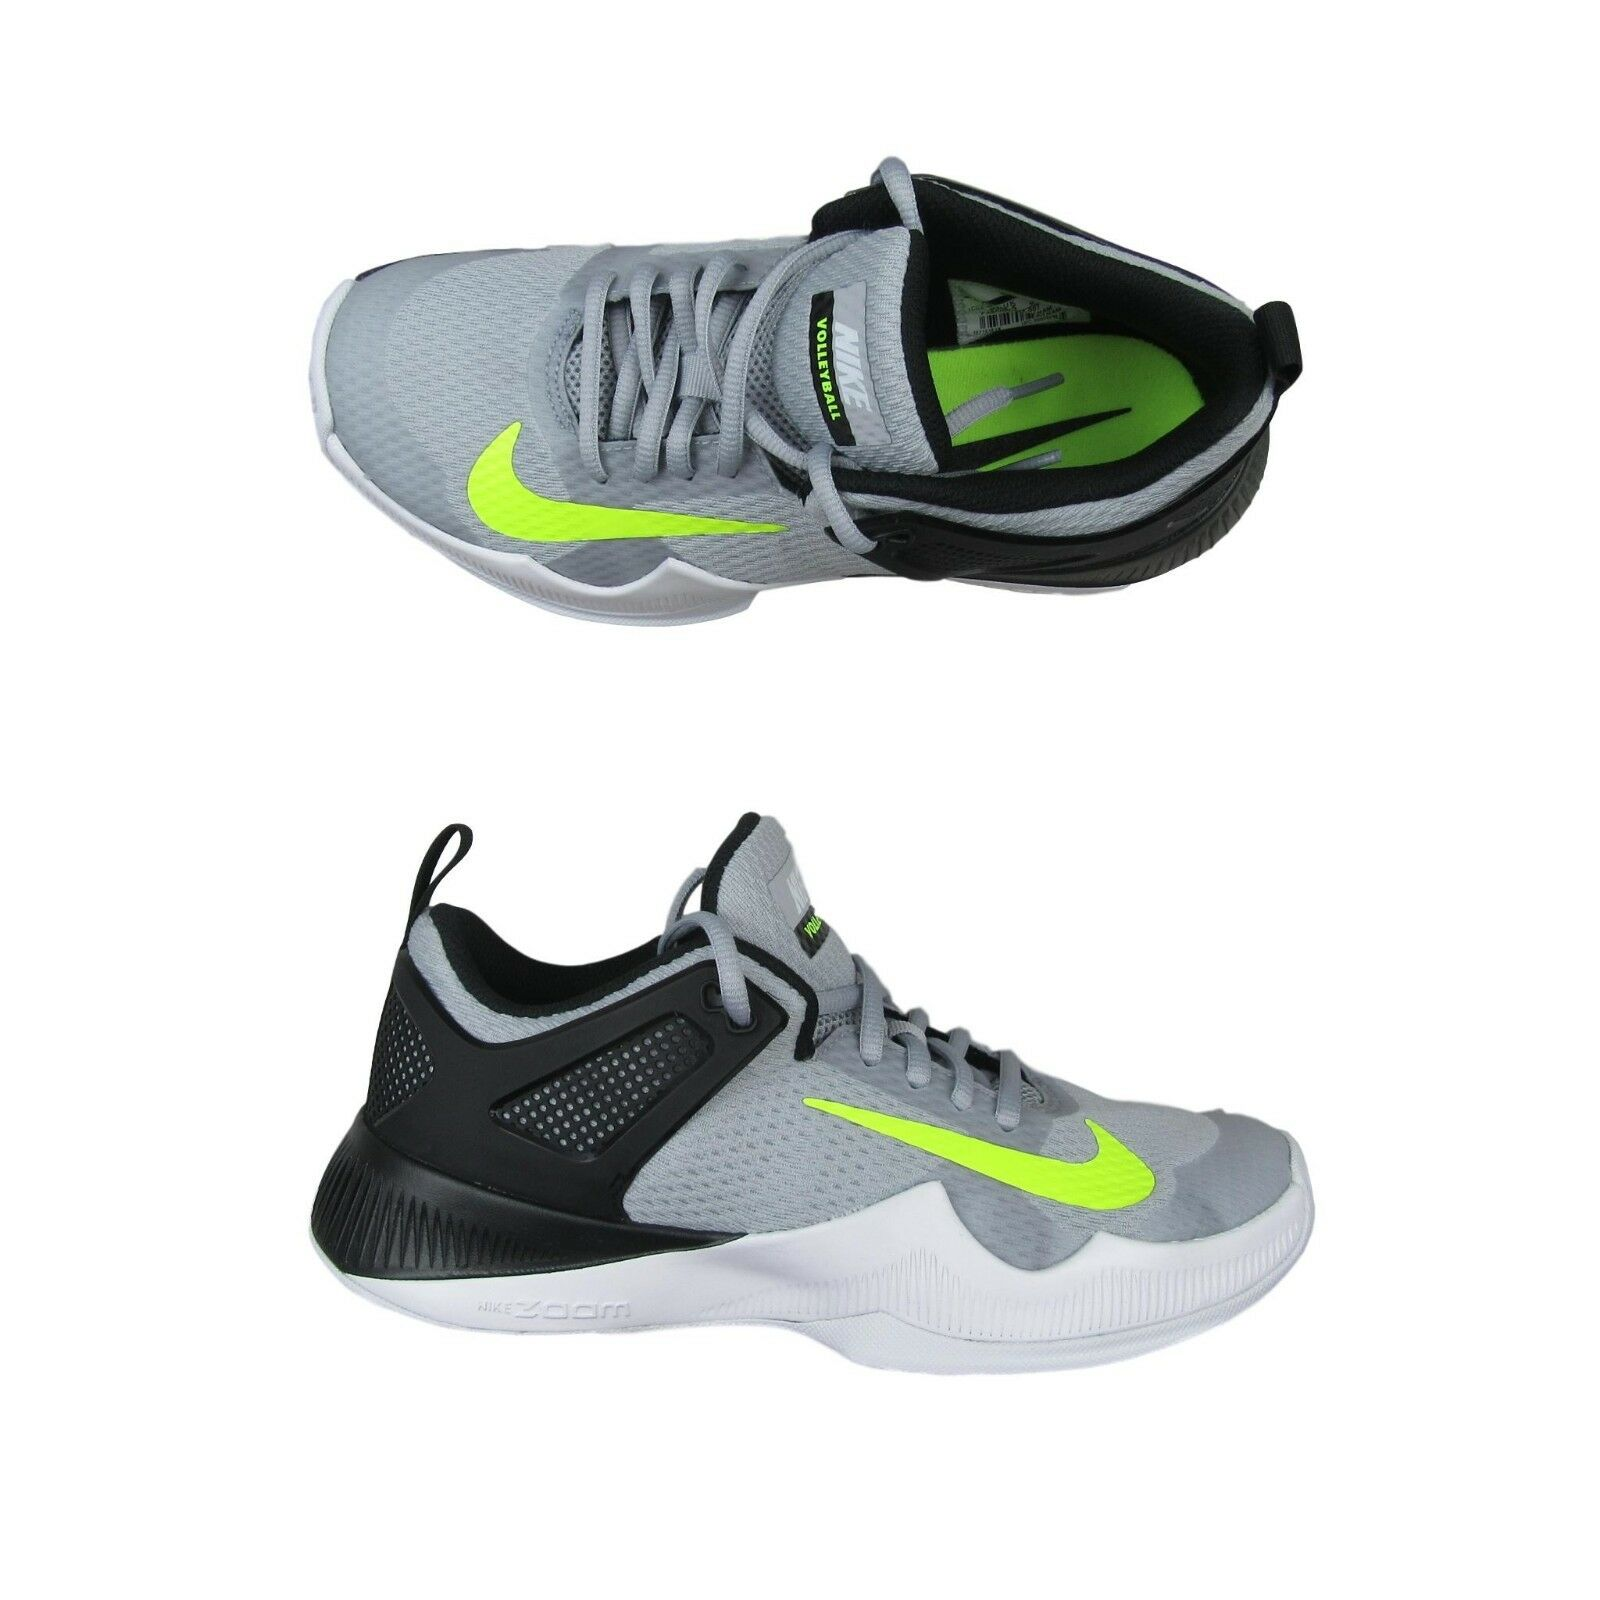 3a9b15cdae95 Nike Air Zoom HyperAce Womens Size 8.5 Volleyball Shoes Gray Volt ...